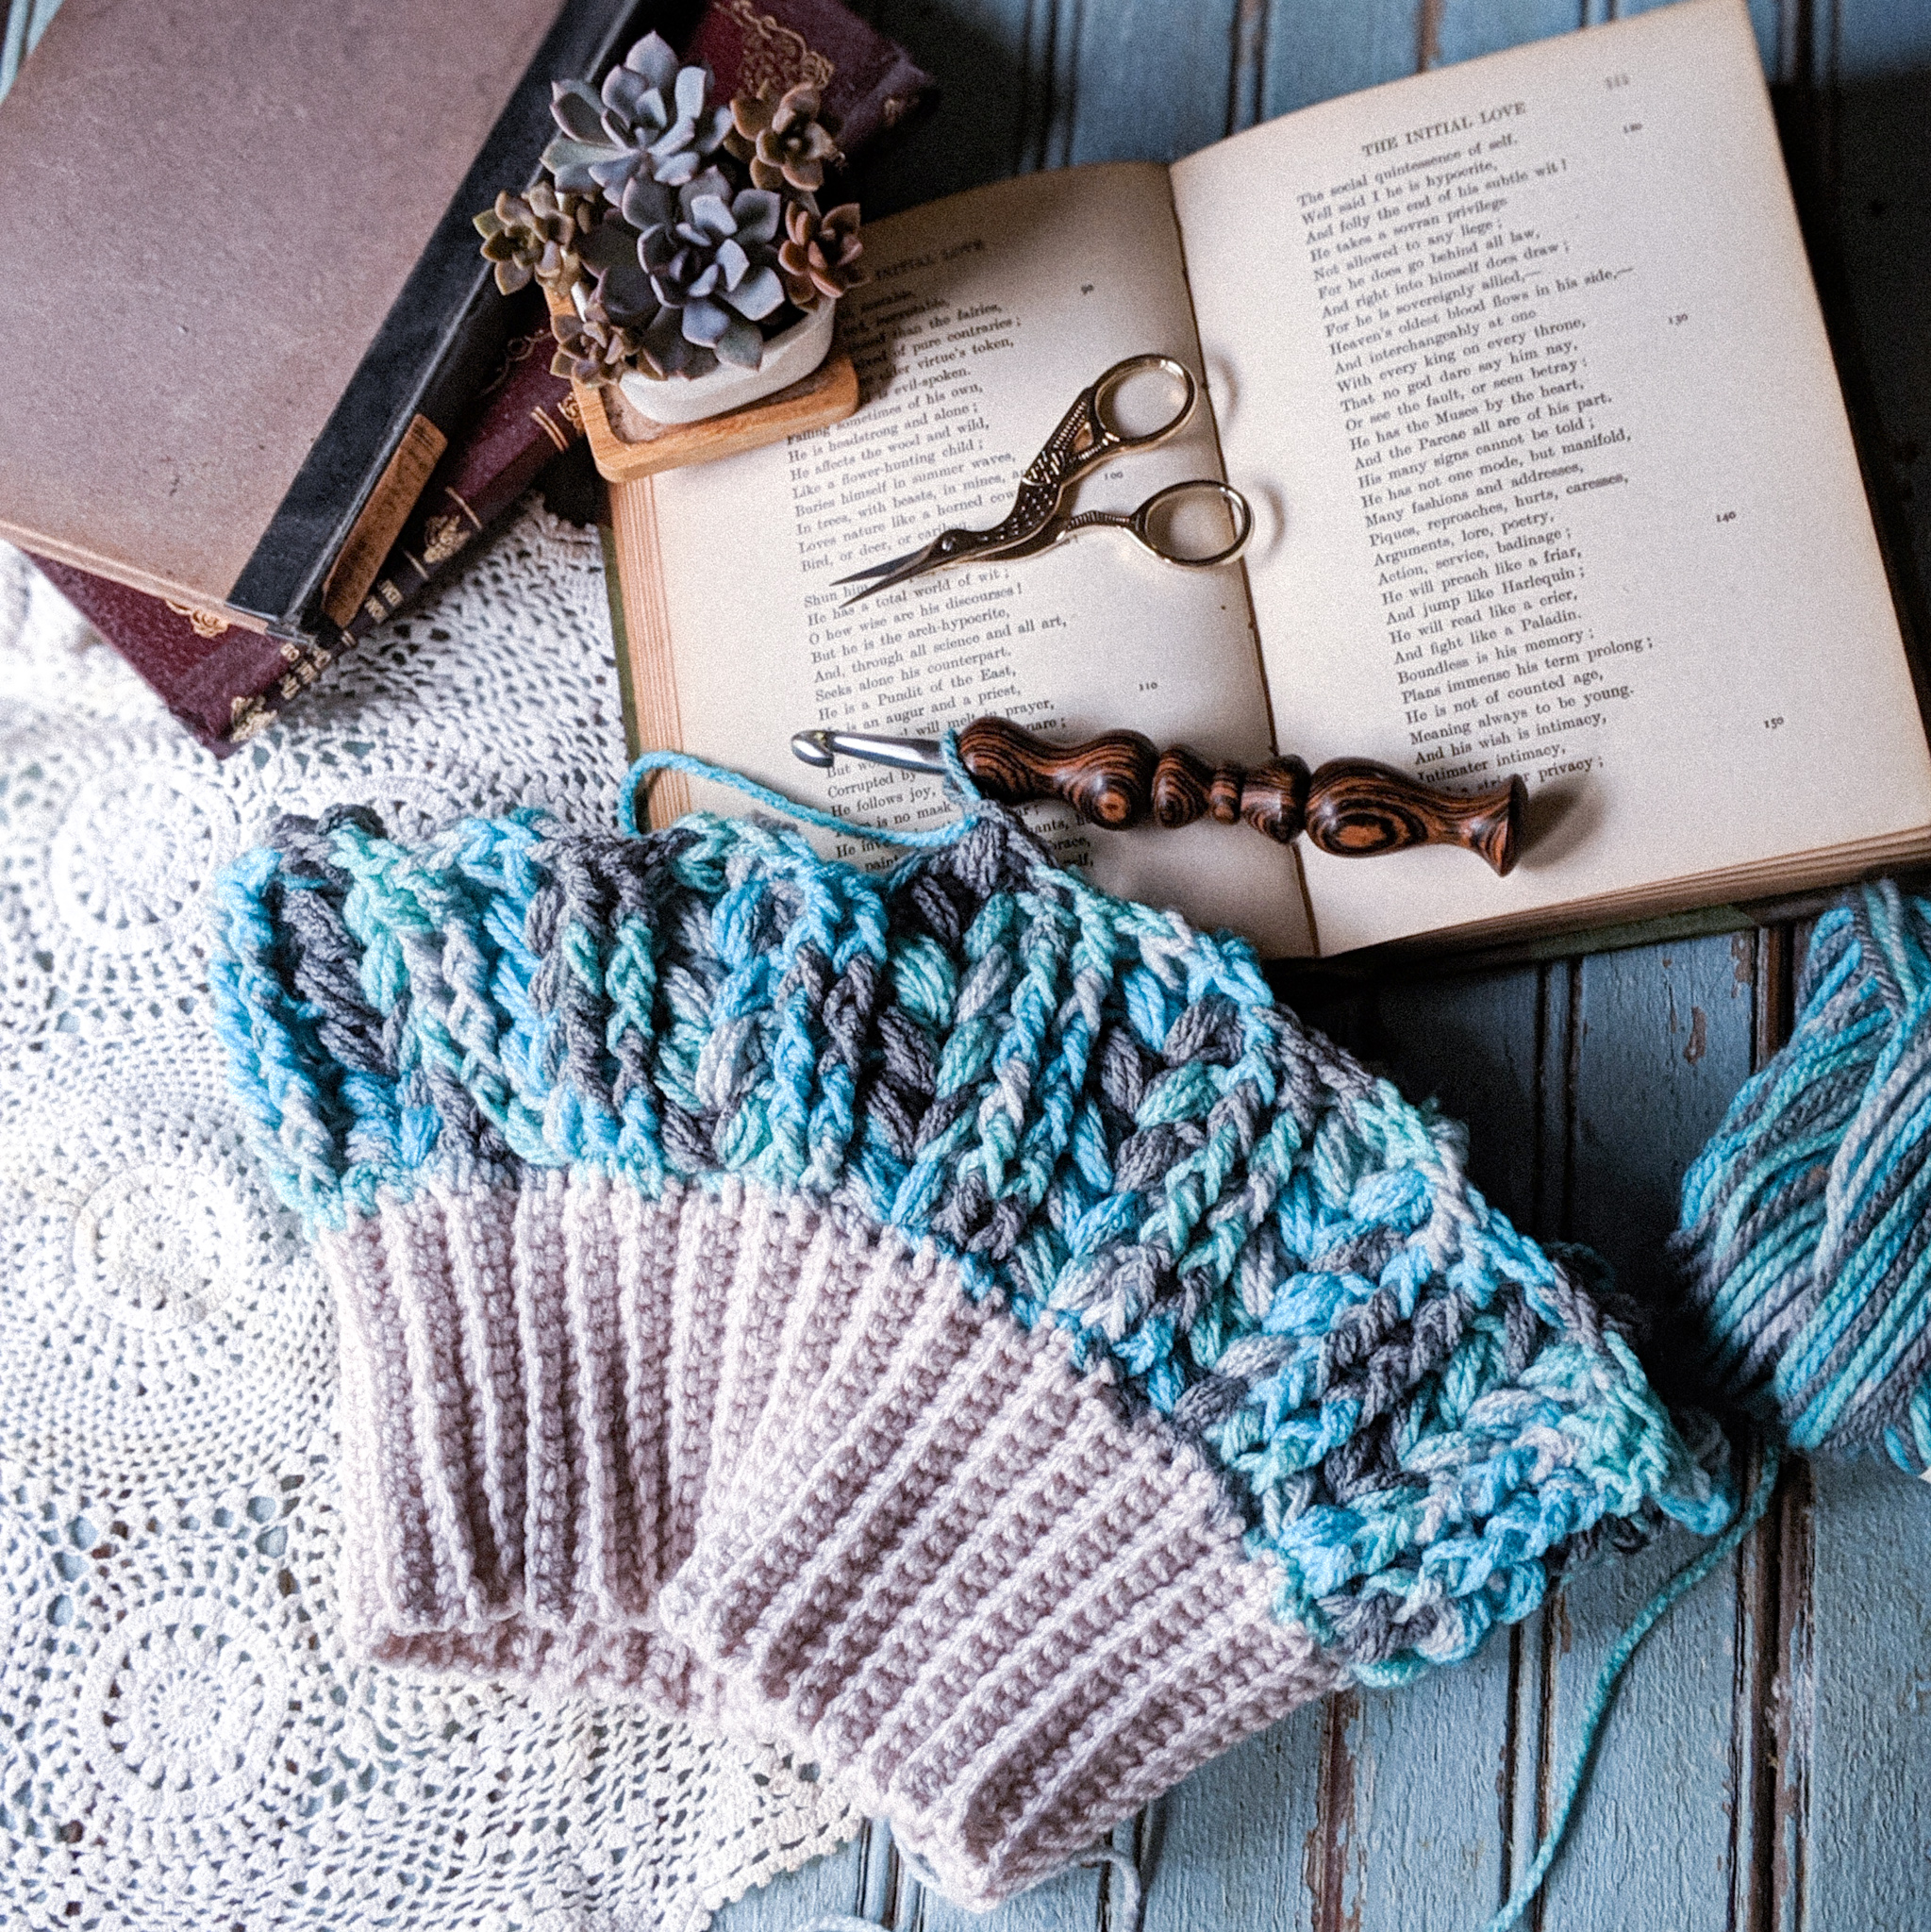 Need help with a pattern? - Contact me here!